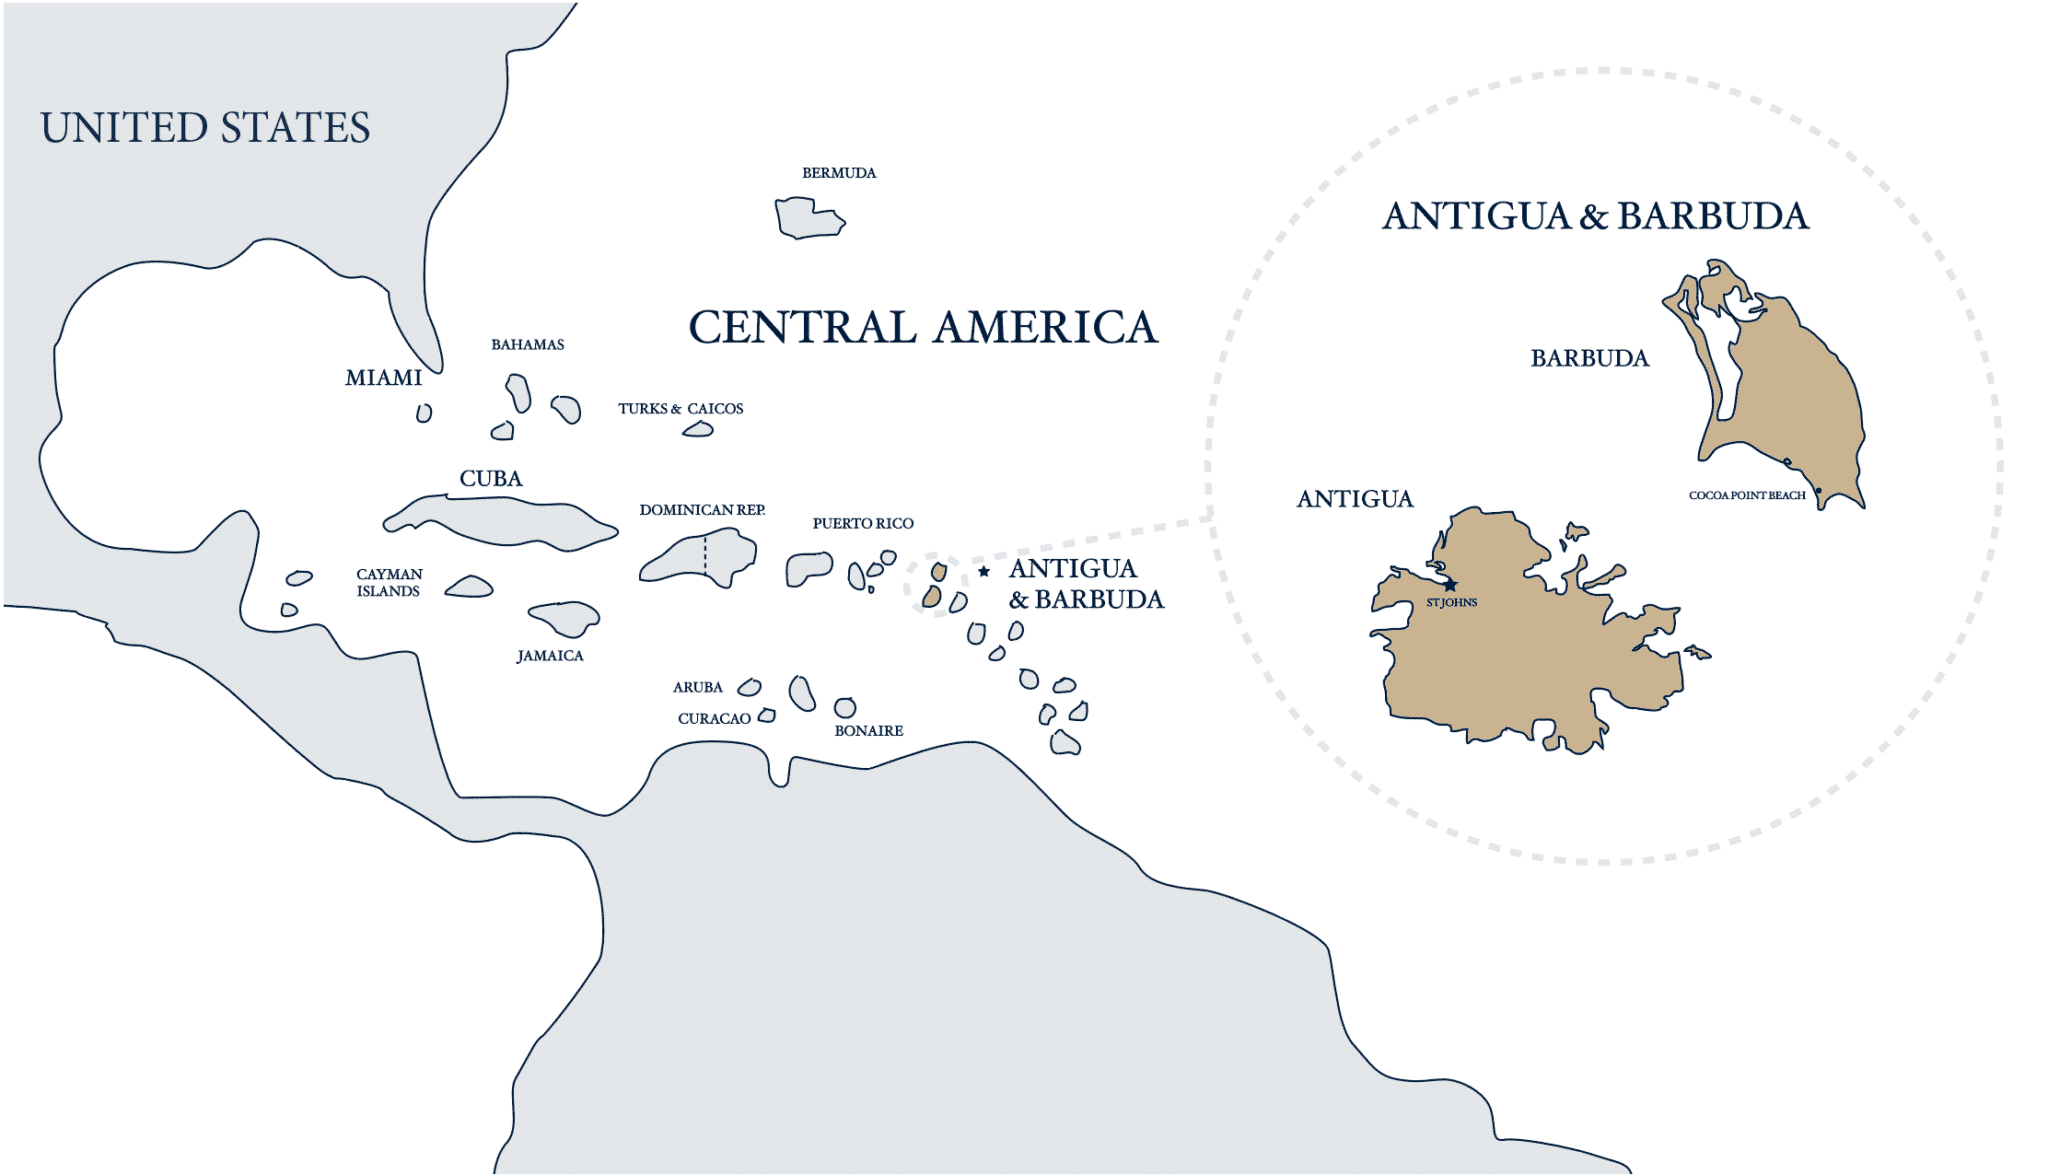 Antigua and Barbuda - Citizenship by Investment - Savory and Partners